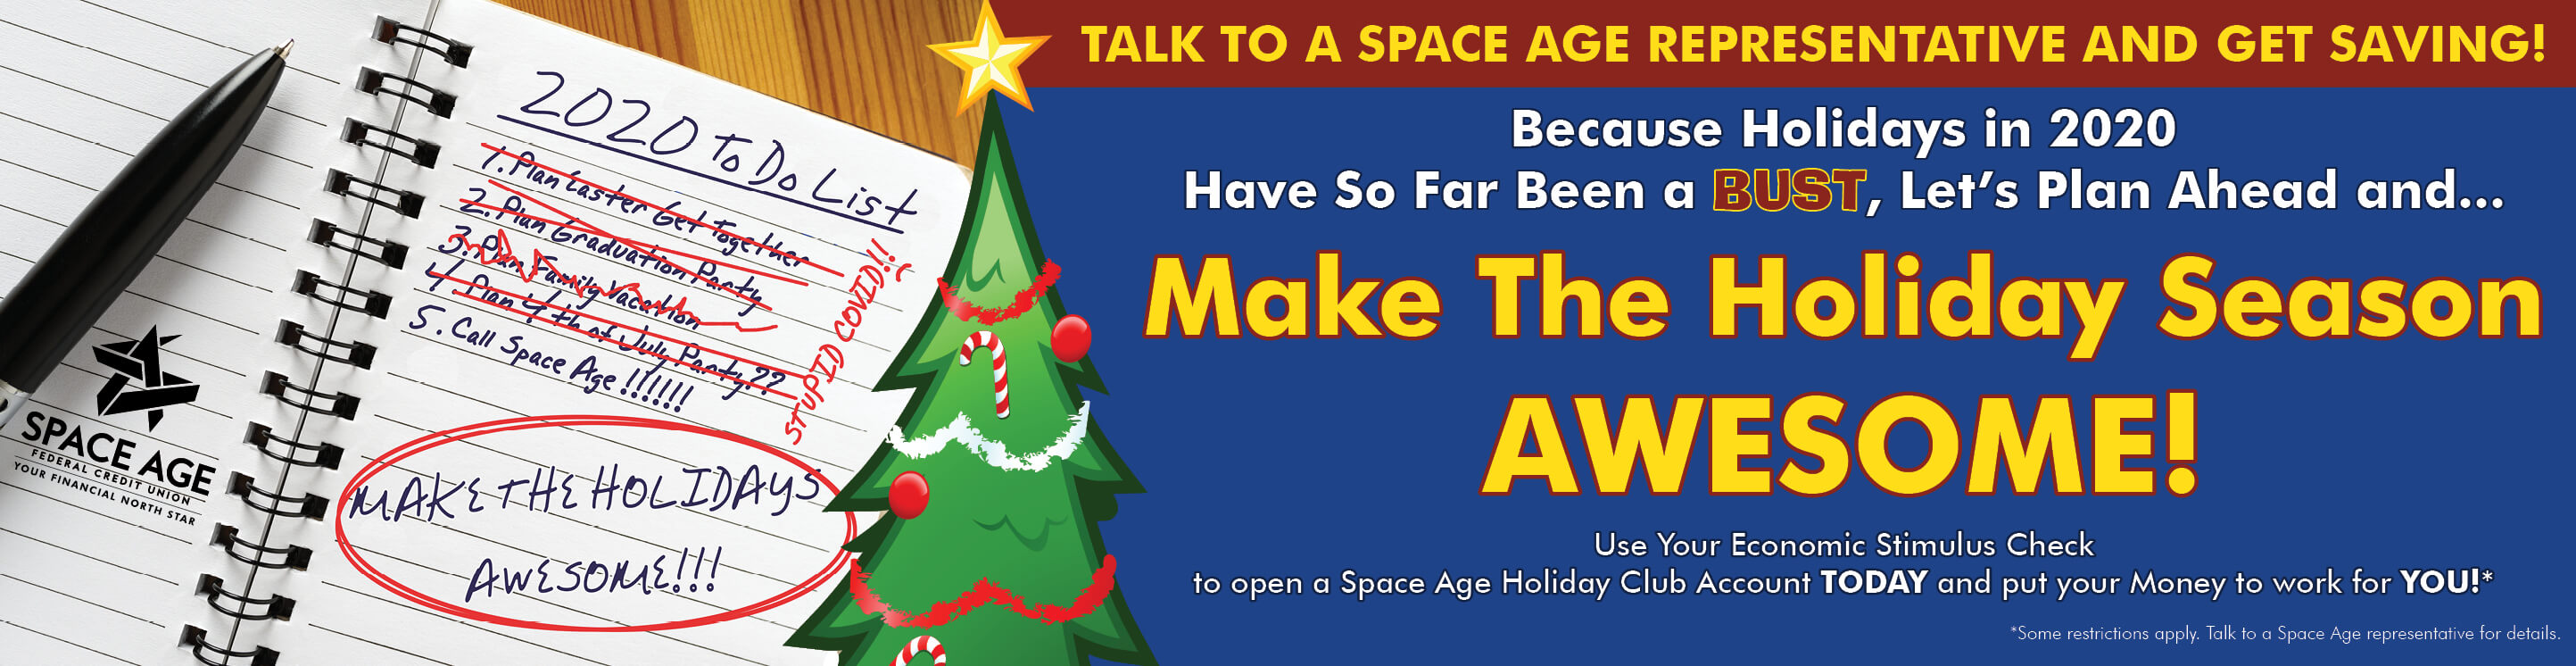 Use Your Economic Stimulus Check to open a Space Age Holiday Club Account.